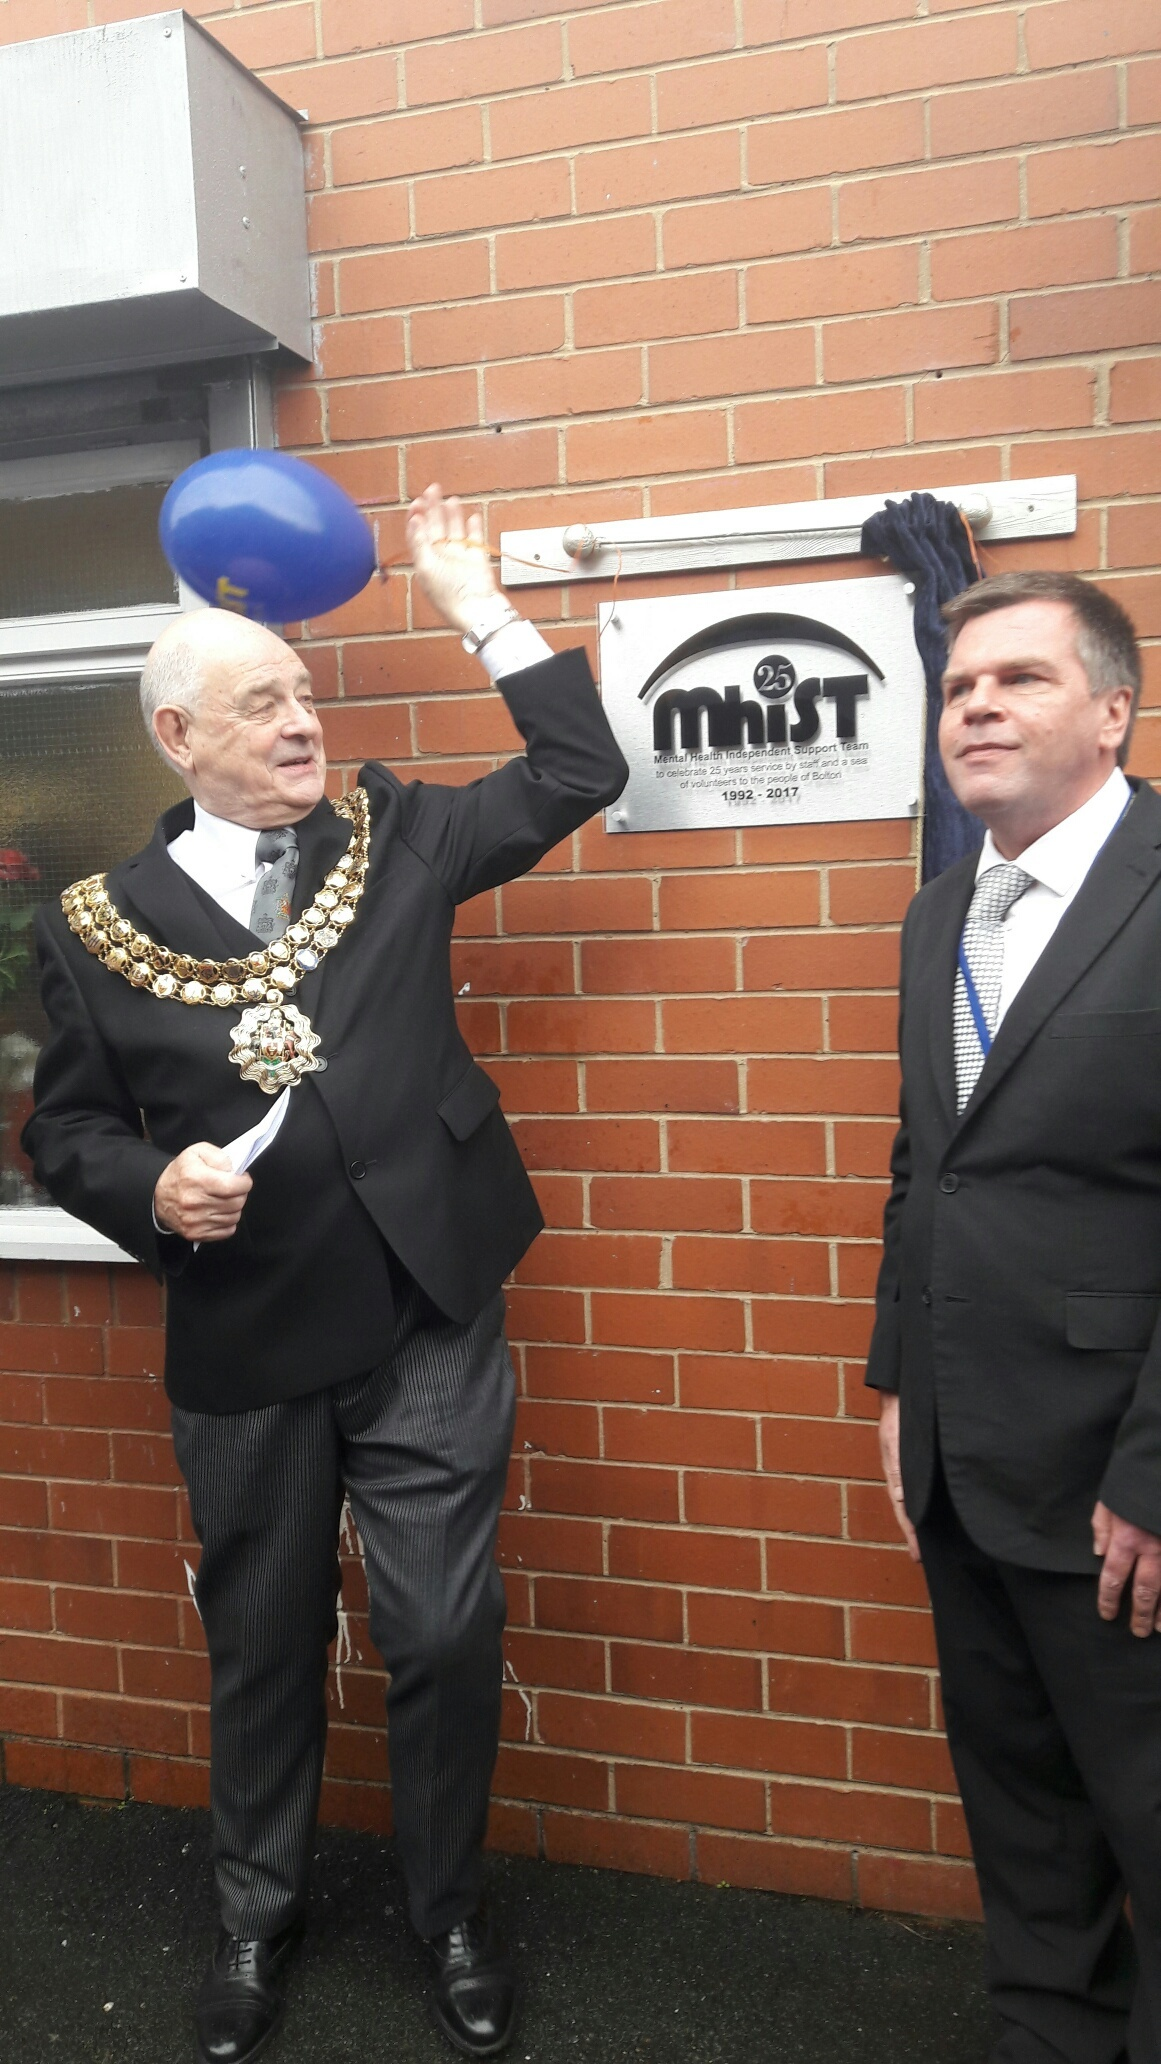 MILESTONE: The Mayor of Bolton, Cllr Roger Hayes, with Peter Pendlebury, chair of MhIST.